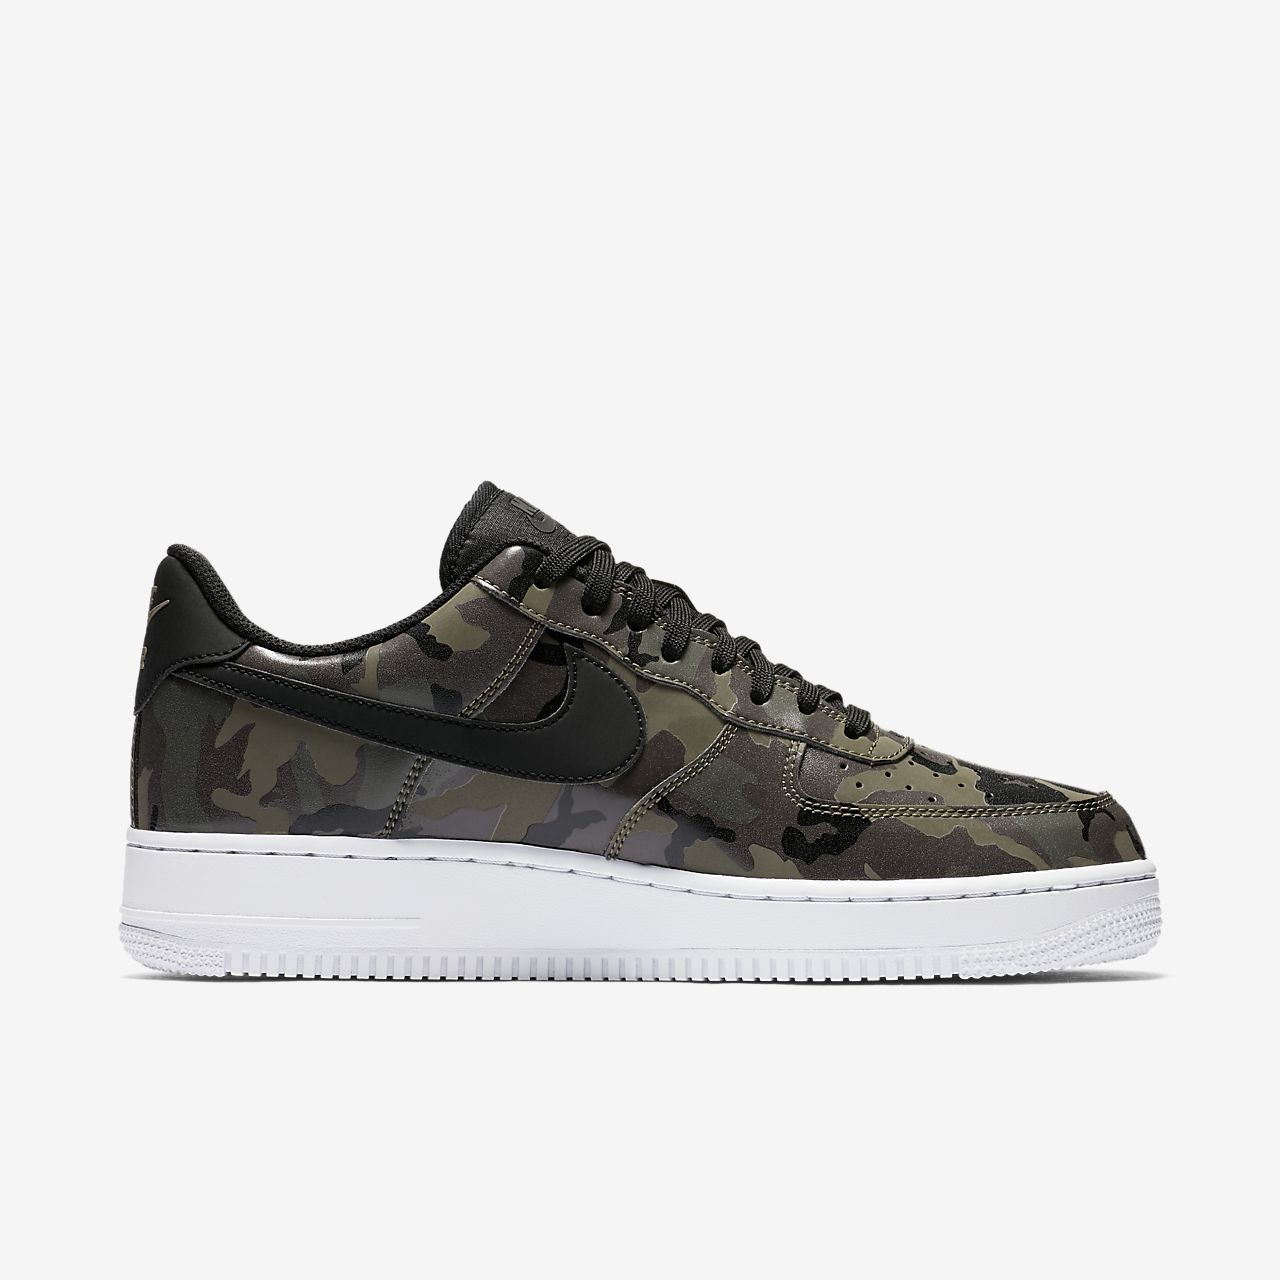 Nike Air Force 1 07 Bas-tops & Chaussures 9SM9ytnwh